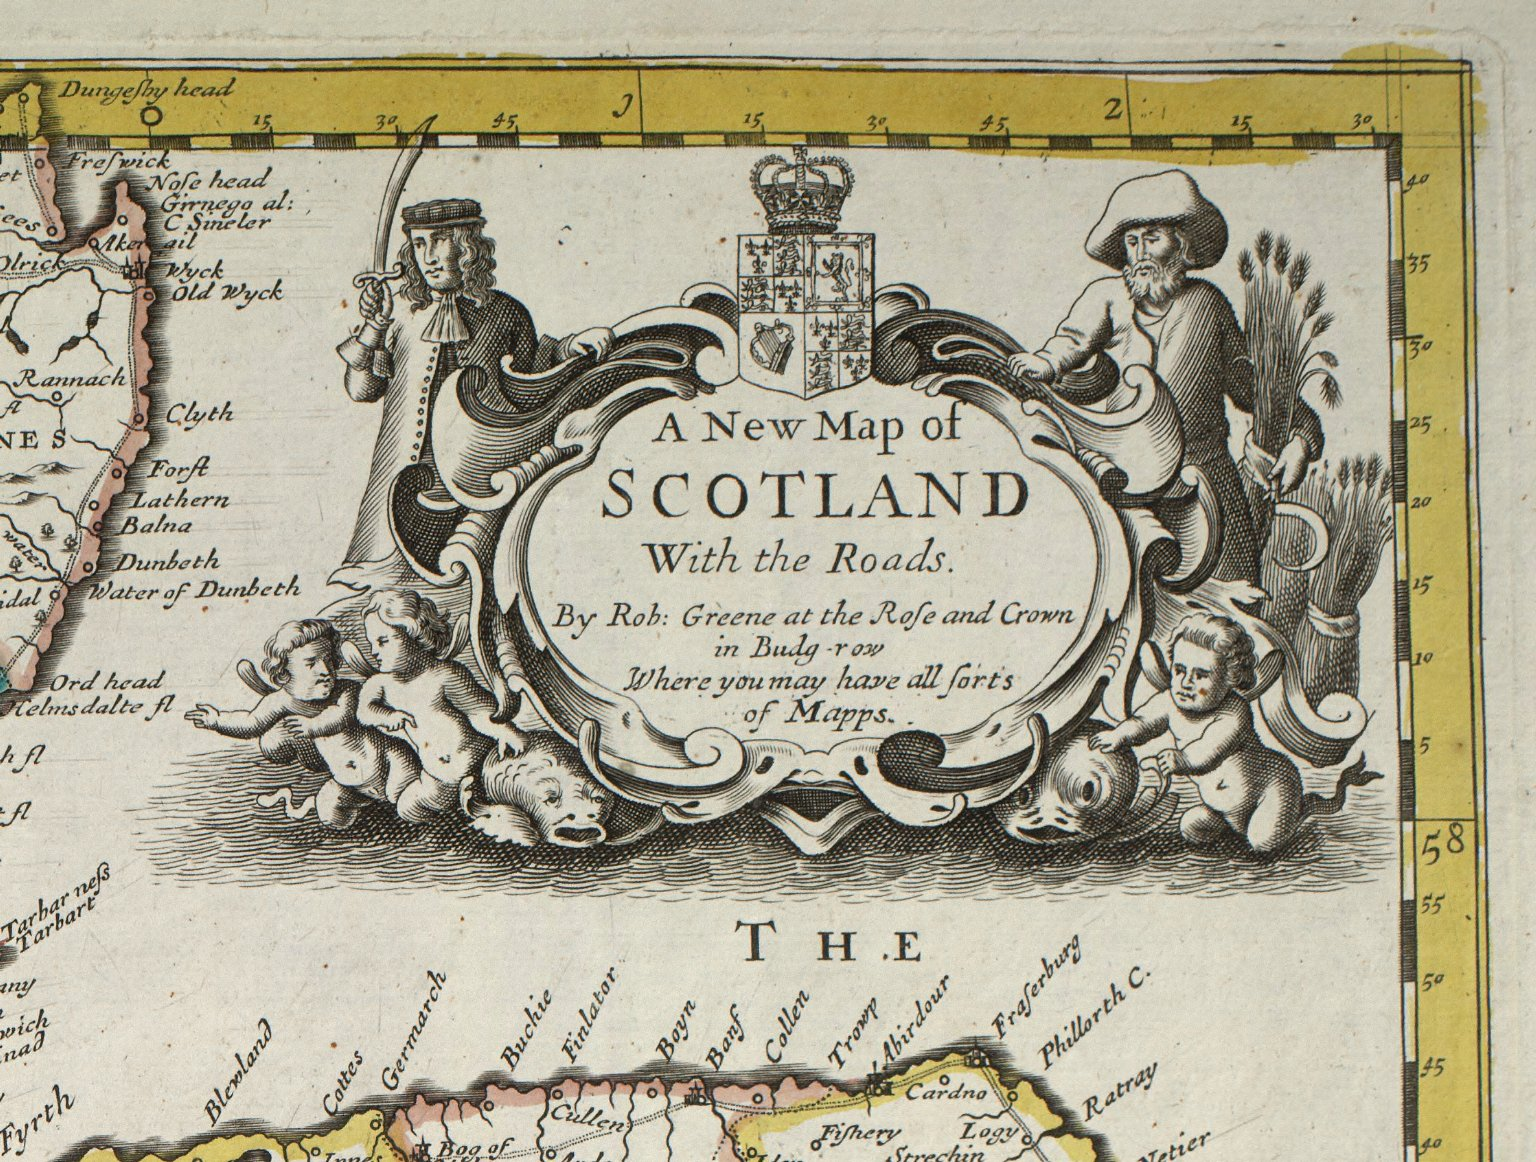 [Detail of the title cartouche from:] A New Map of Scotland With the Roads [1 of 1]